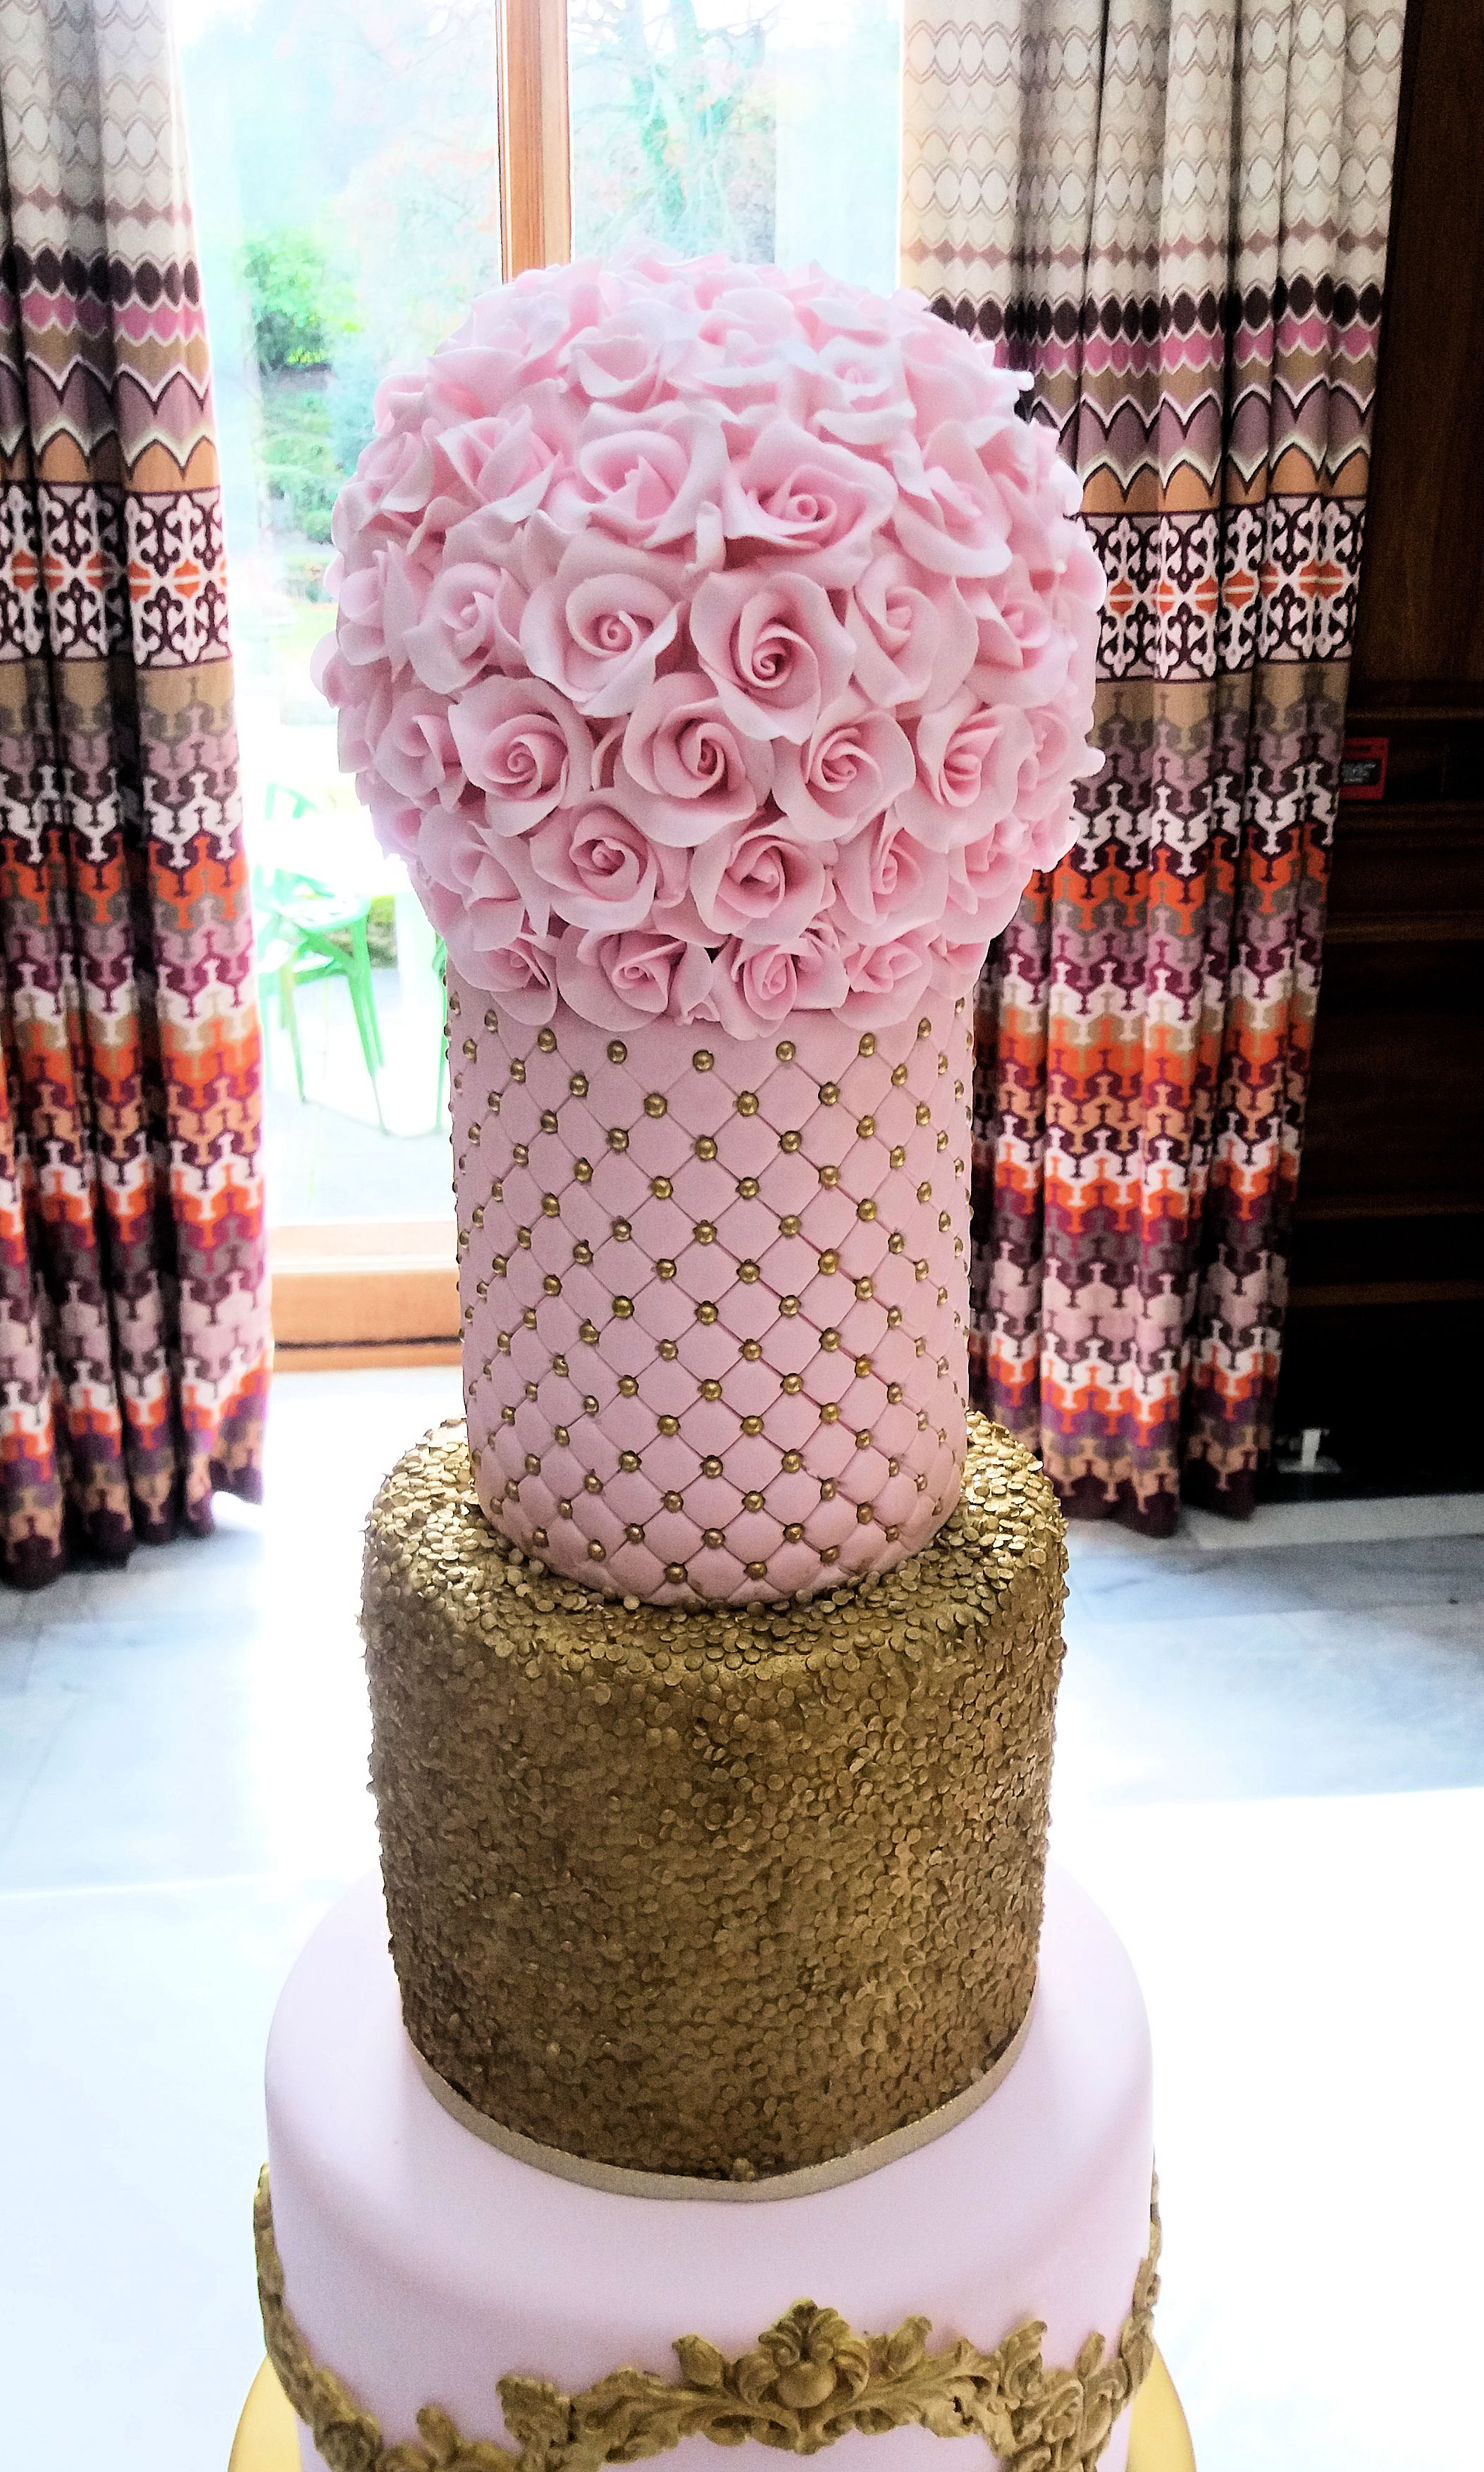 Rose Flower ball for wedding cake.jpg